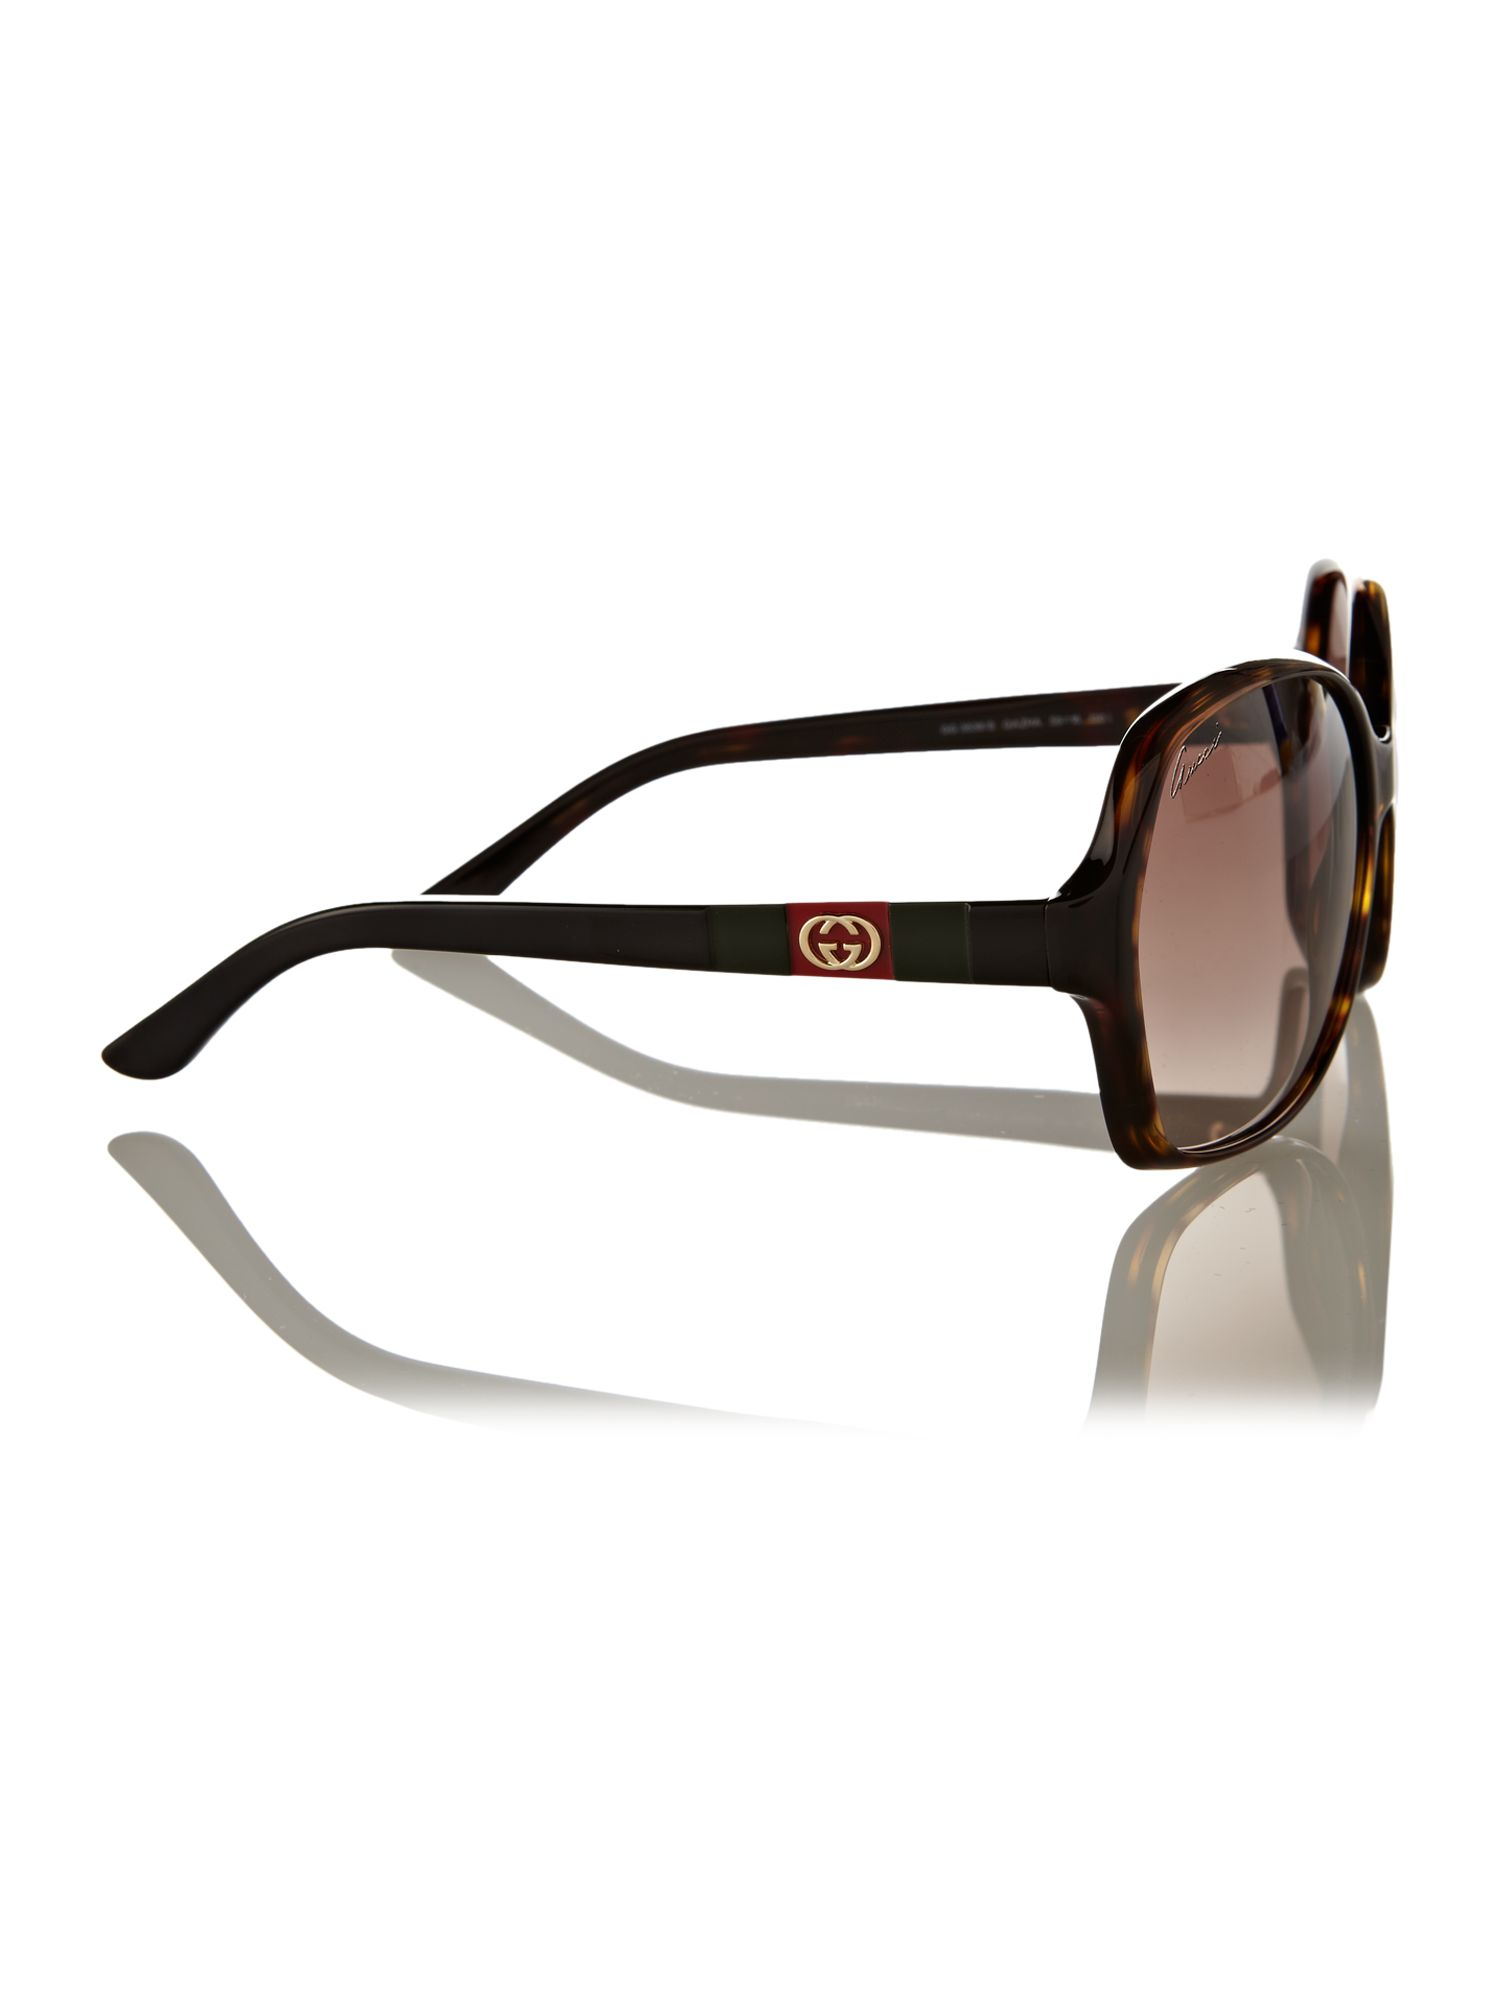 Ladies GG3538/S Dark Havana Sunglasses